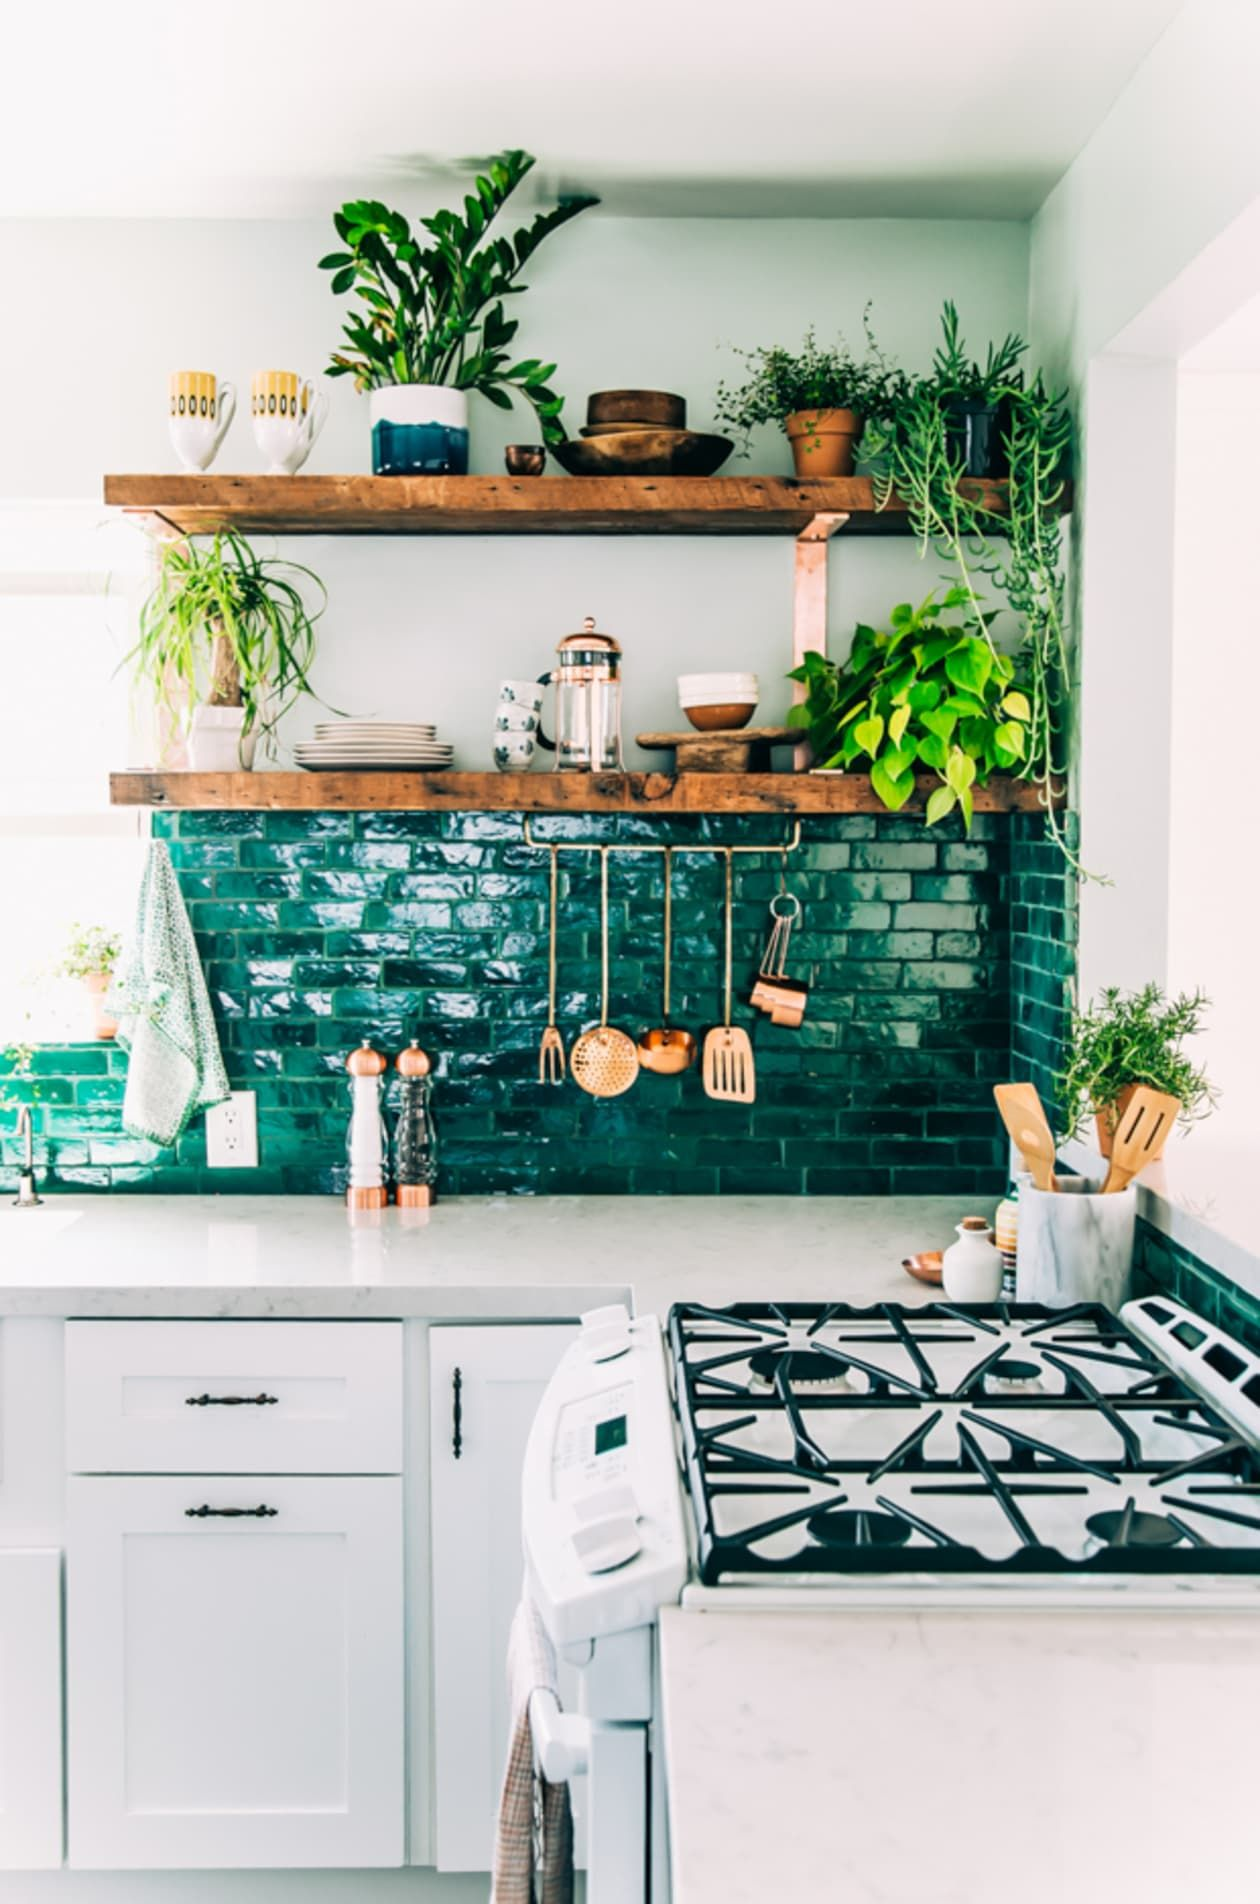 Exciting New Tile Trends For 2017 And A Few Old Favorites Here To Stay Kitchen Design Small Interior Design Kitchen Kitchen Interior